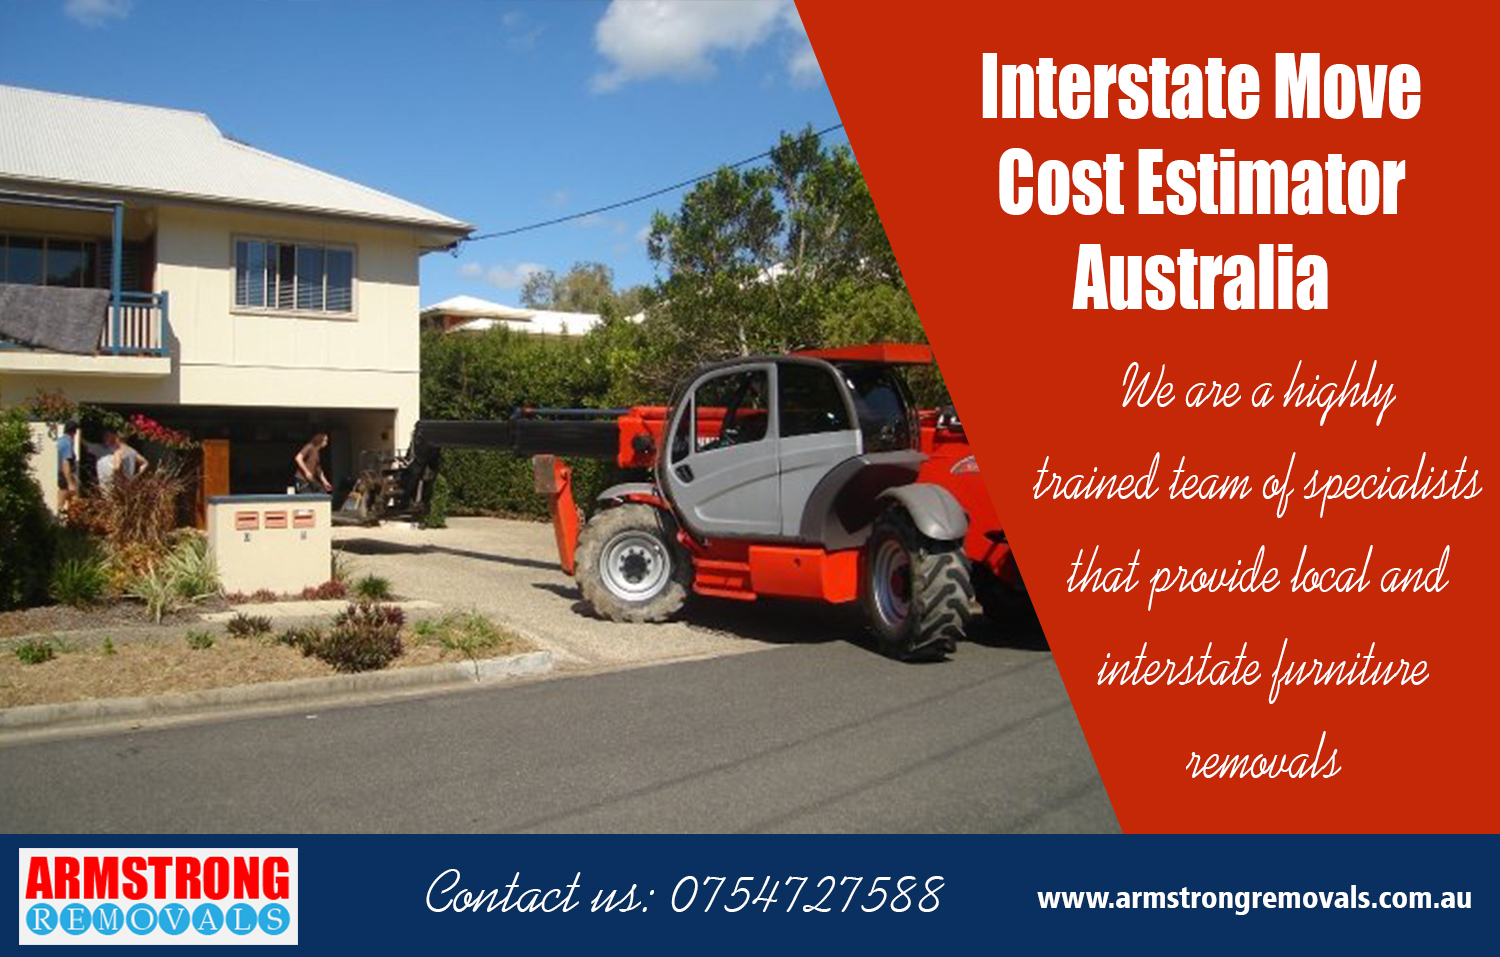 Interstate Move Cost Estimator Australia